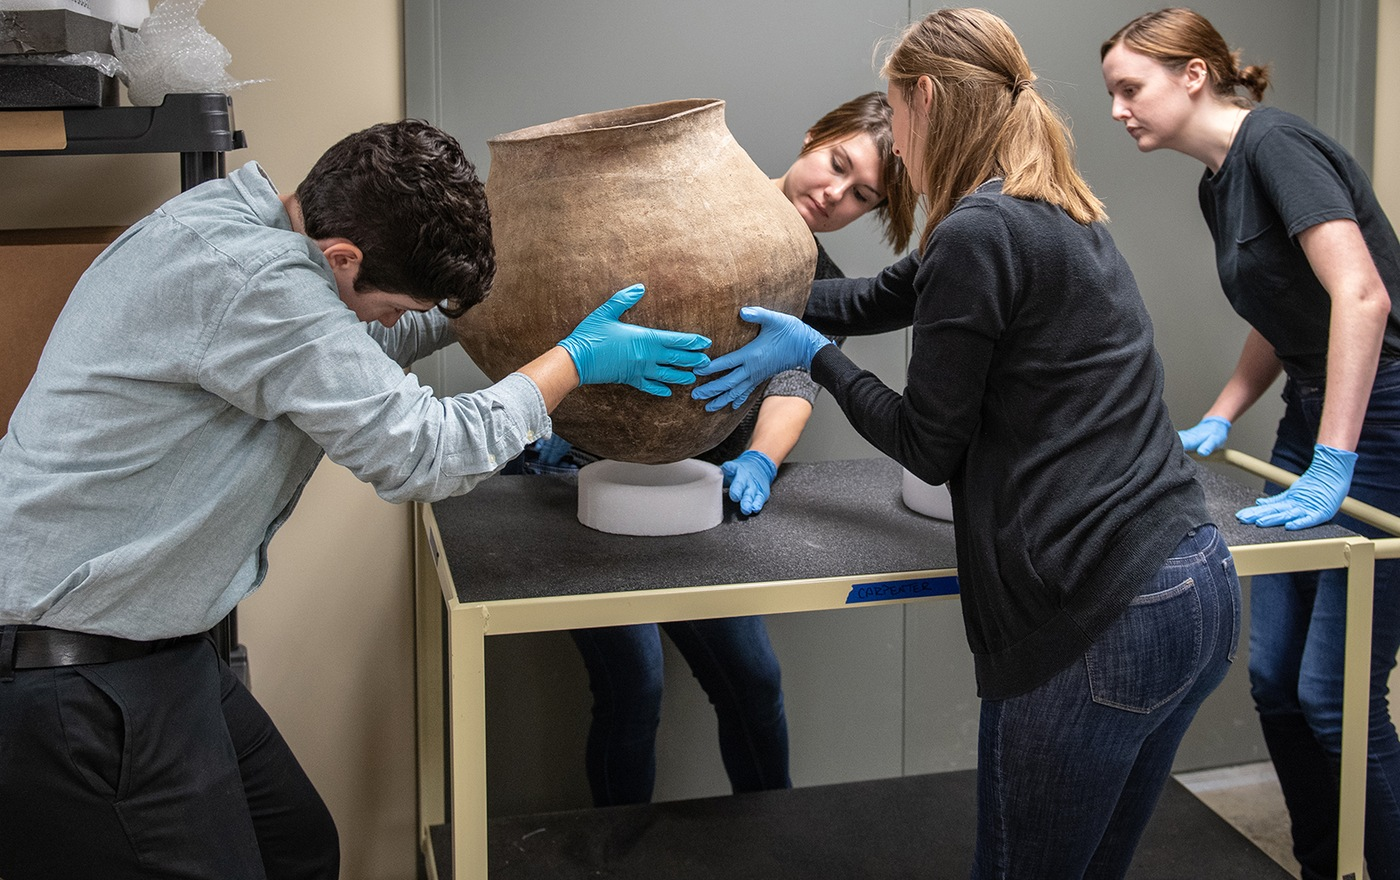 Graduate students handle a large piece of pottery that was among the thousands of items recovered by the FBI at Don Miller's home in 2014.